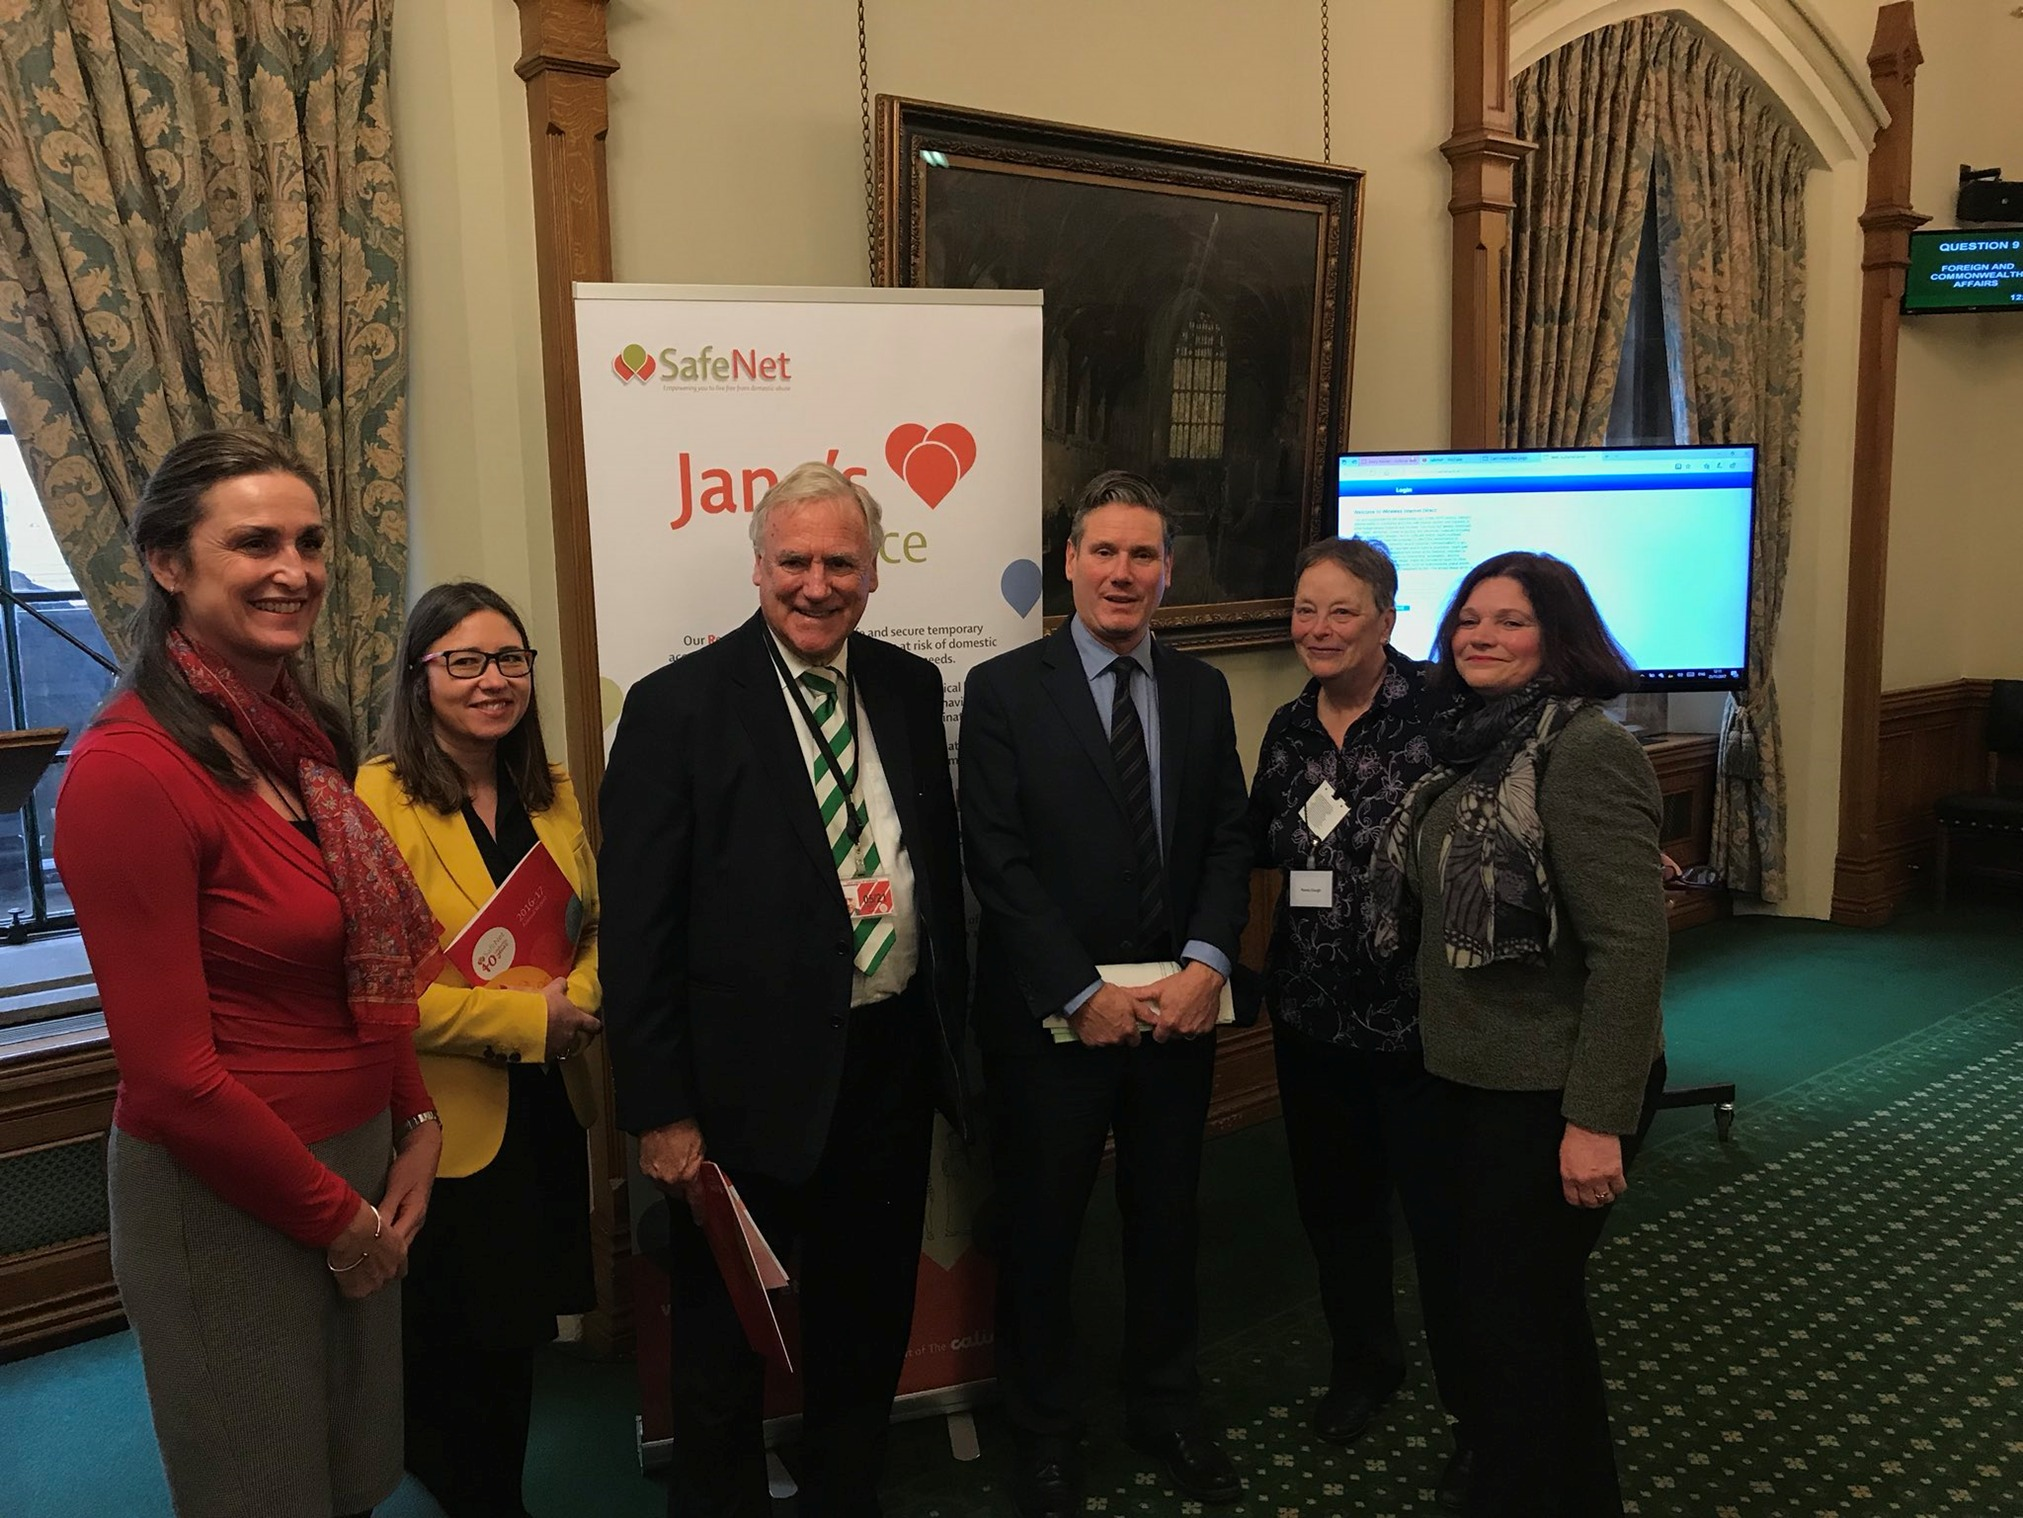 Karen Ainsworth and Rachel Horman from SafeNet's management committee, Lord Taylor of Holbeach and MPs Keir Starmer, Penny Clough and Julie Cooper